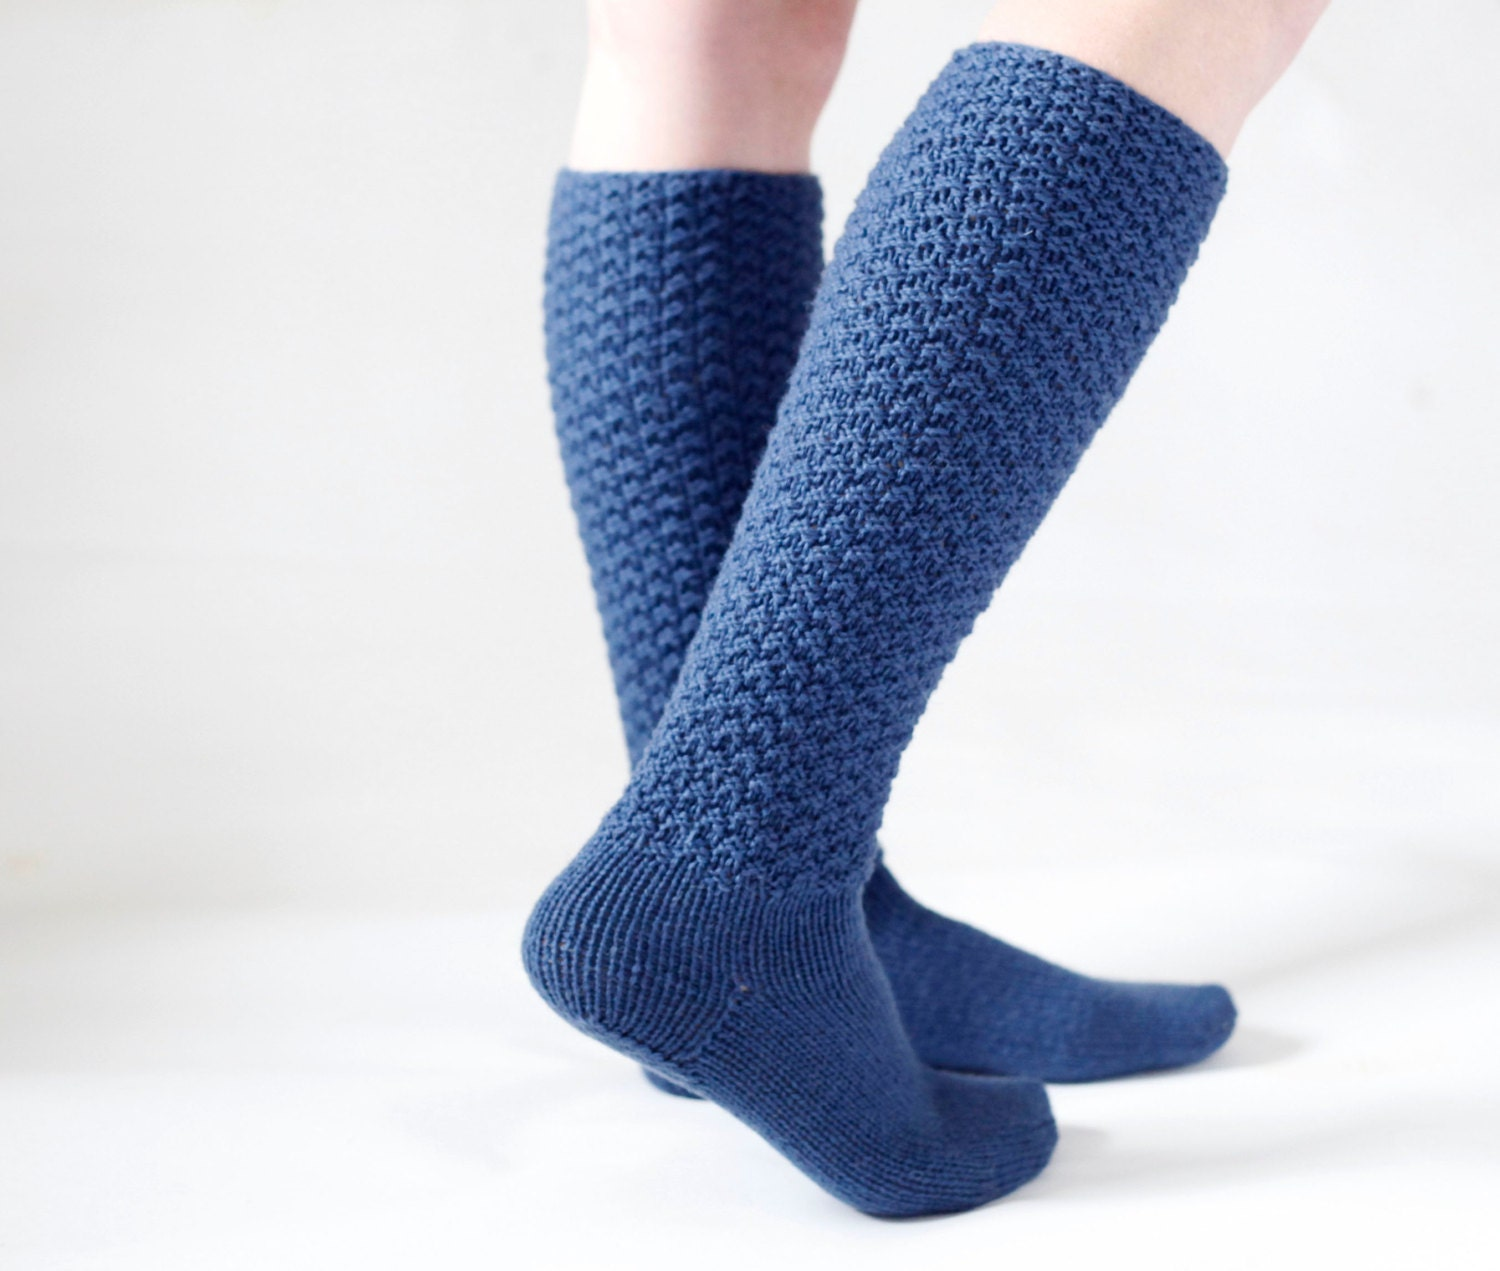 Alpaca wool socks make each day nicer by keeping your feet comfortable and dry. Great fit, Easy returns! Search Women's Alpaca Socks. Refine By Old Fashioned Tender Knee High Tube Socks - *NEW* $ Quickview Indian Alpaca Socks -